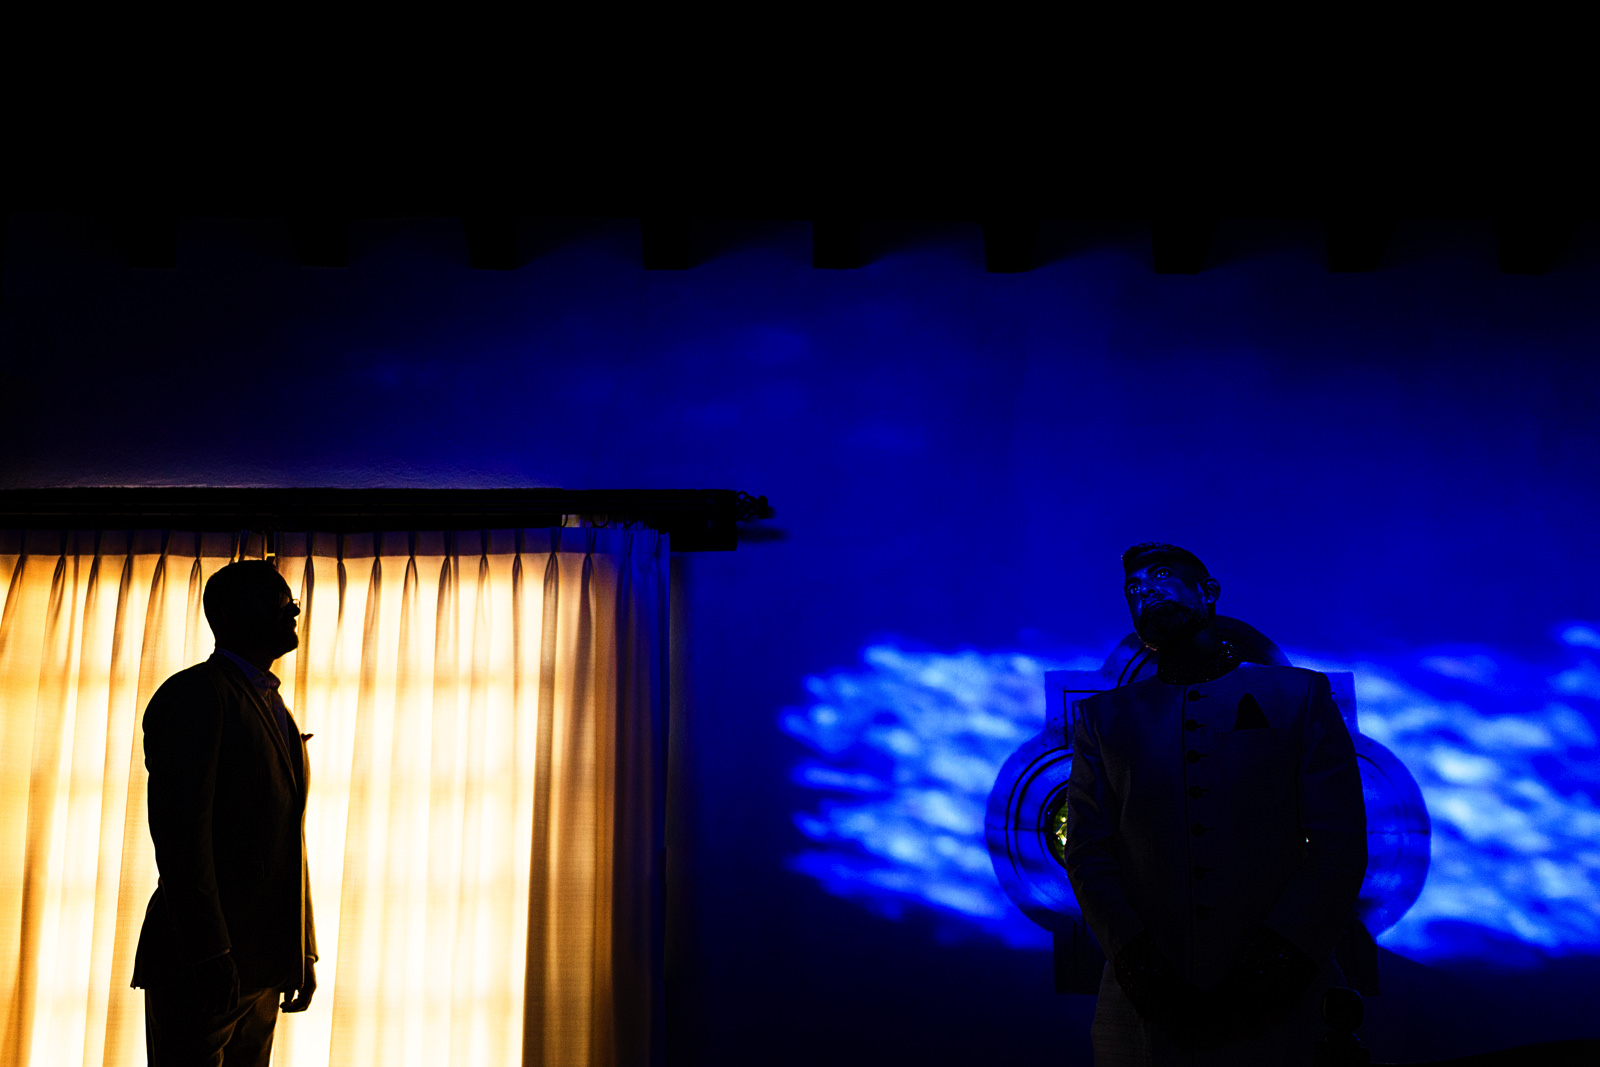 Gay couple's abstract portrait in blue and yellow with a silhouette of one man on a window and his husband on the blue spot